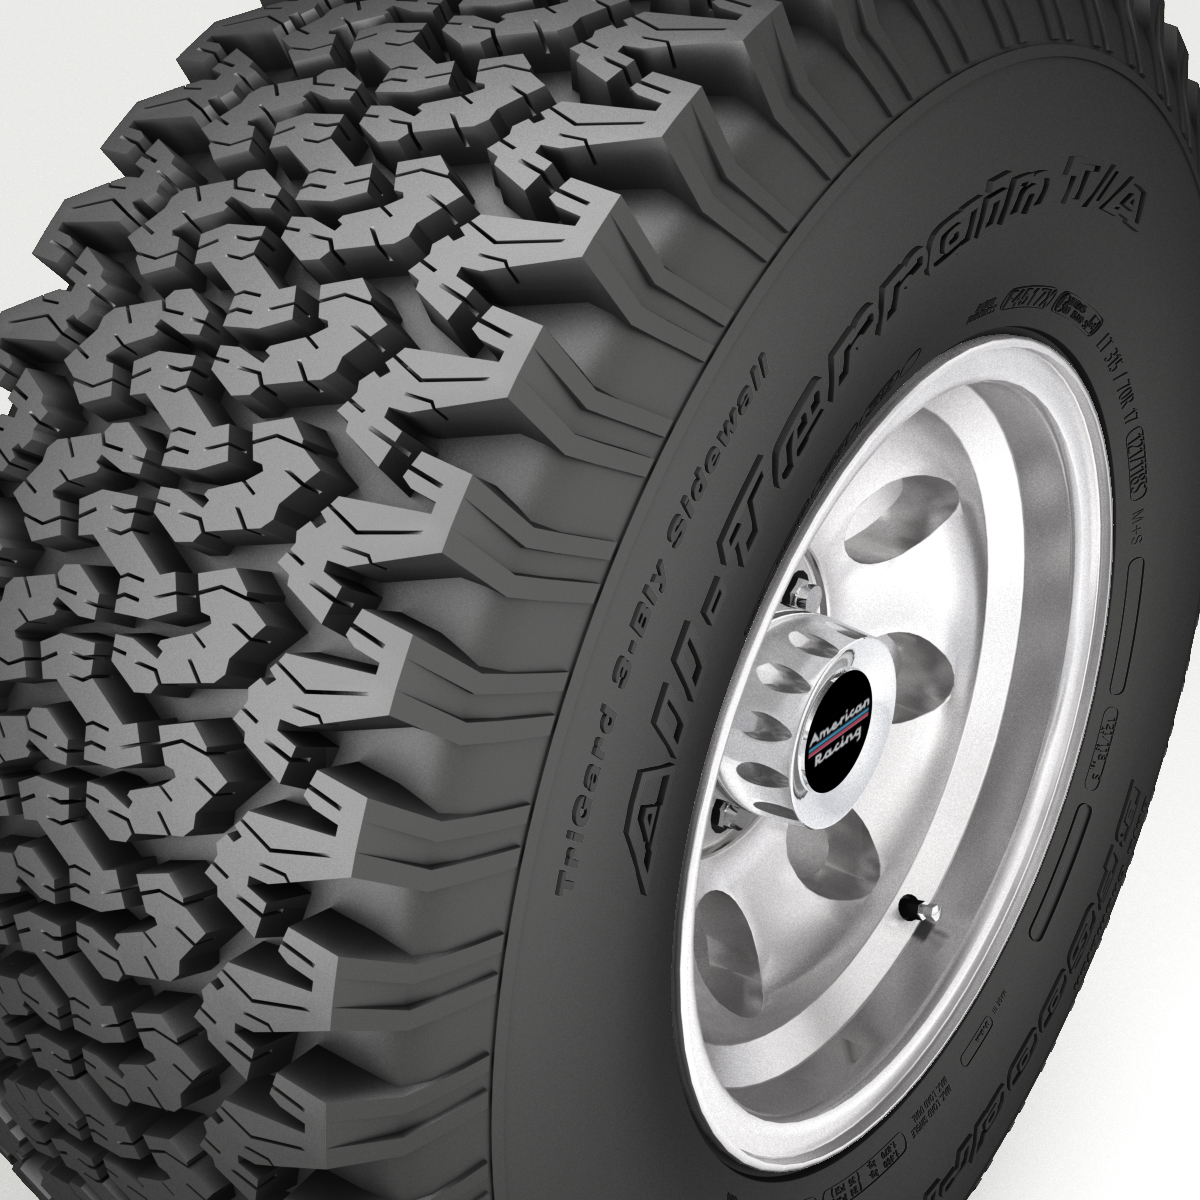 off road wheel and tire 3d model 3ds max fbx obj 224391